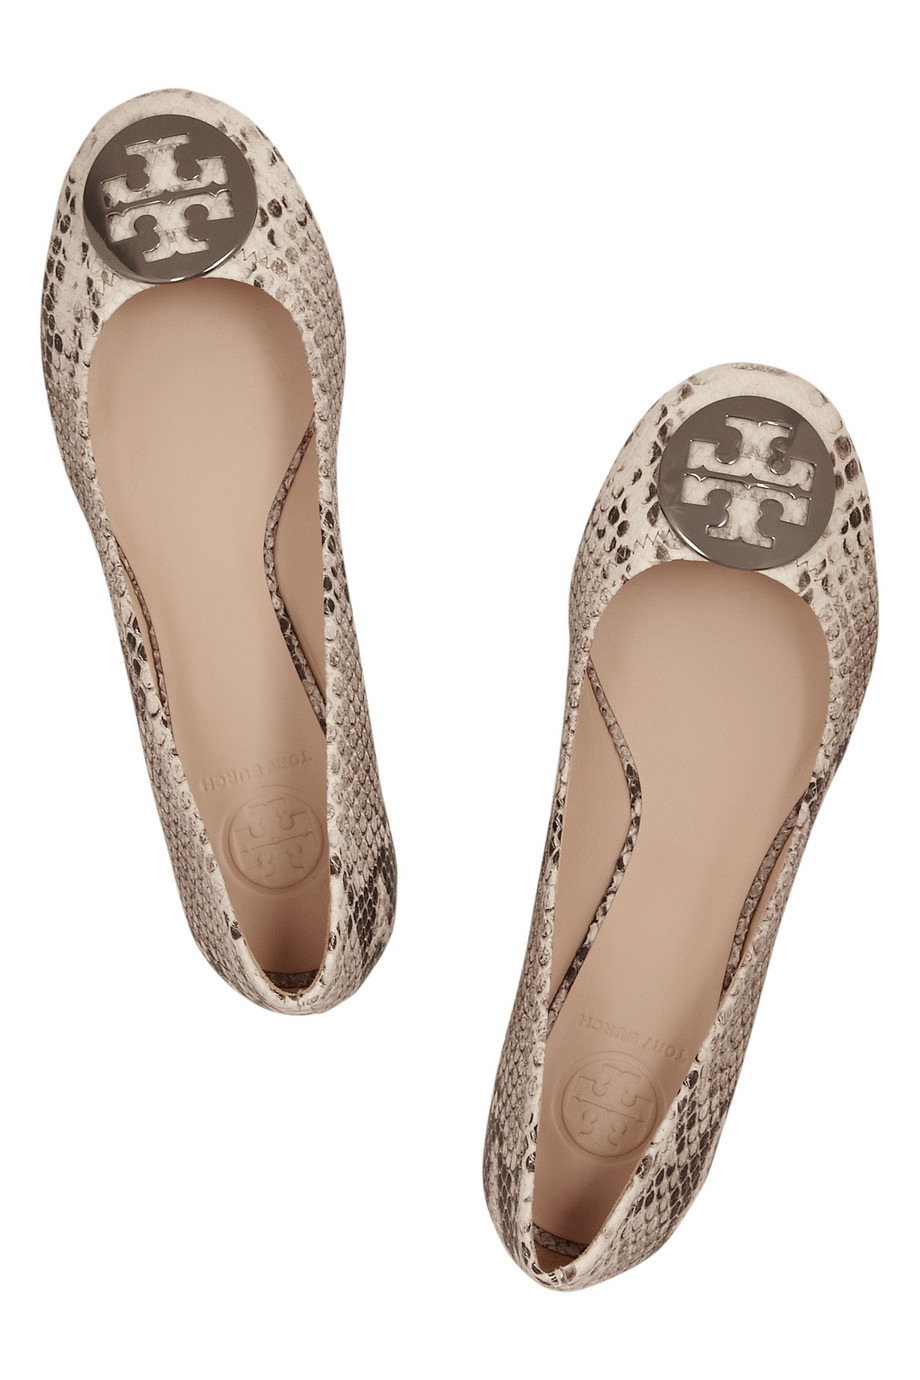 acbd178781b91 ... get lyst tory burch reva snake effect leather ballet flats in natural  f1633 12879